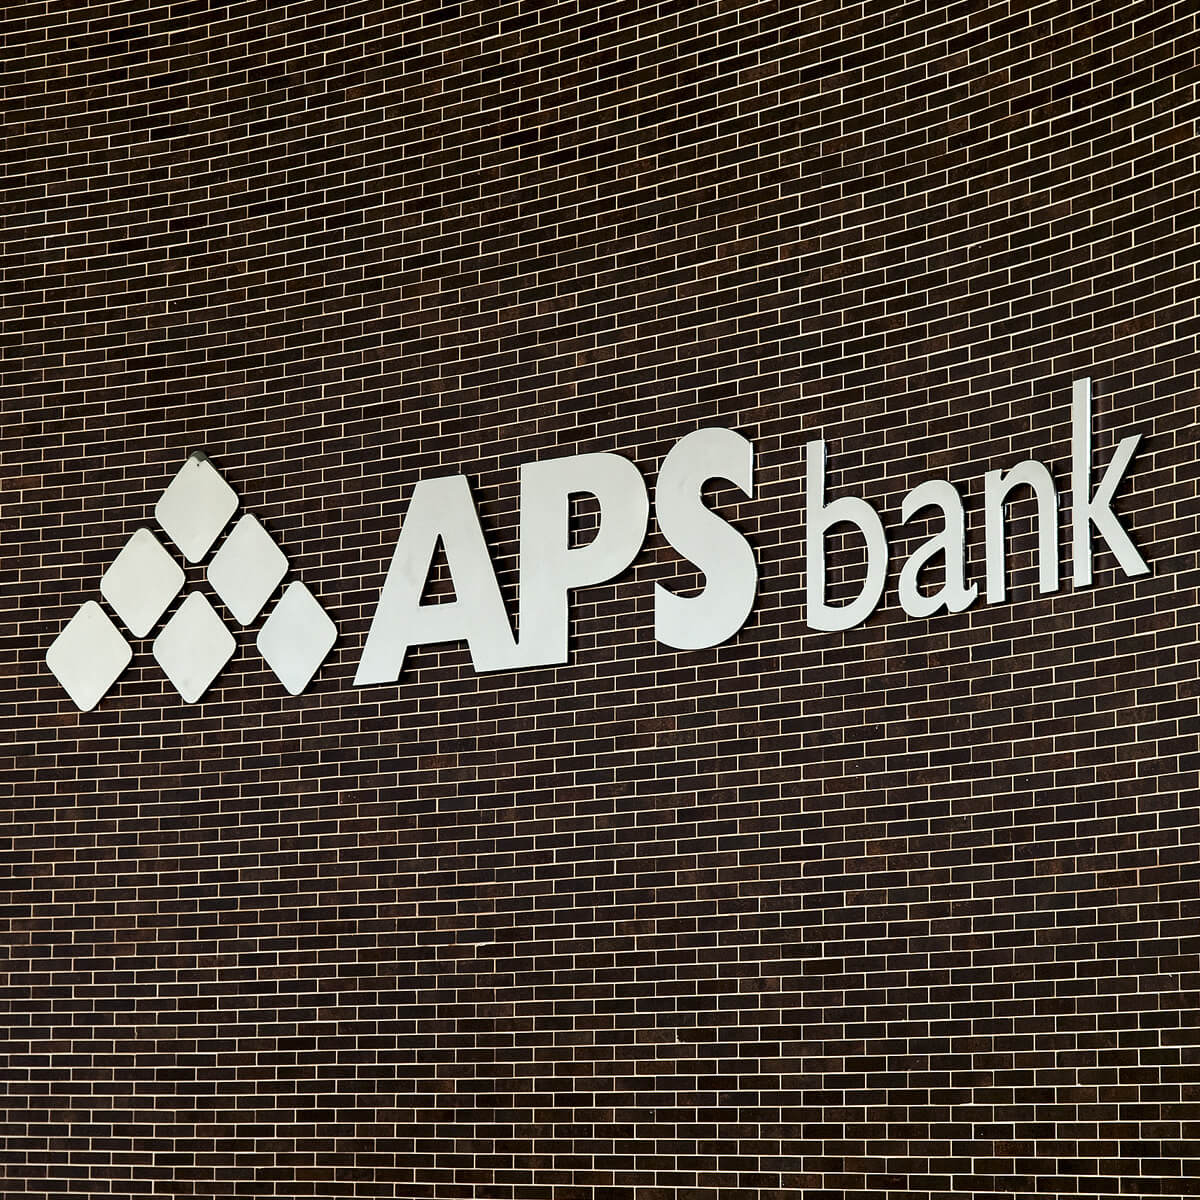 APS Bank announces positive 1H 2020 performance amid COVID-19 anxieties